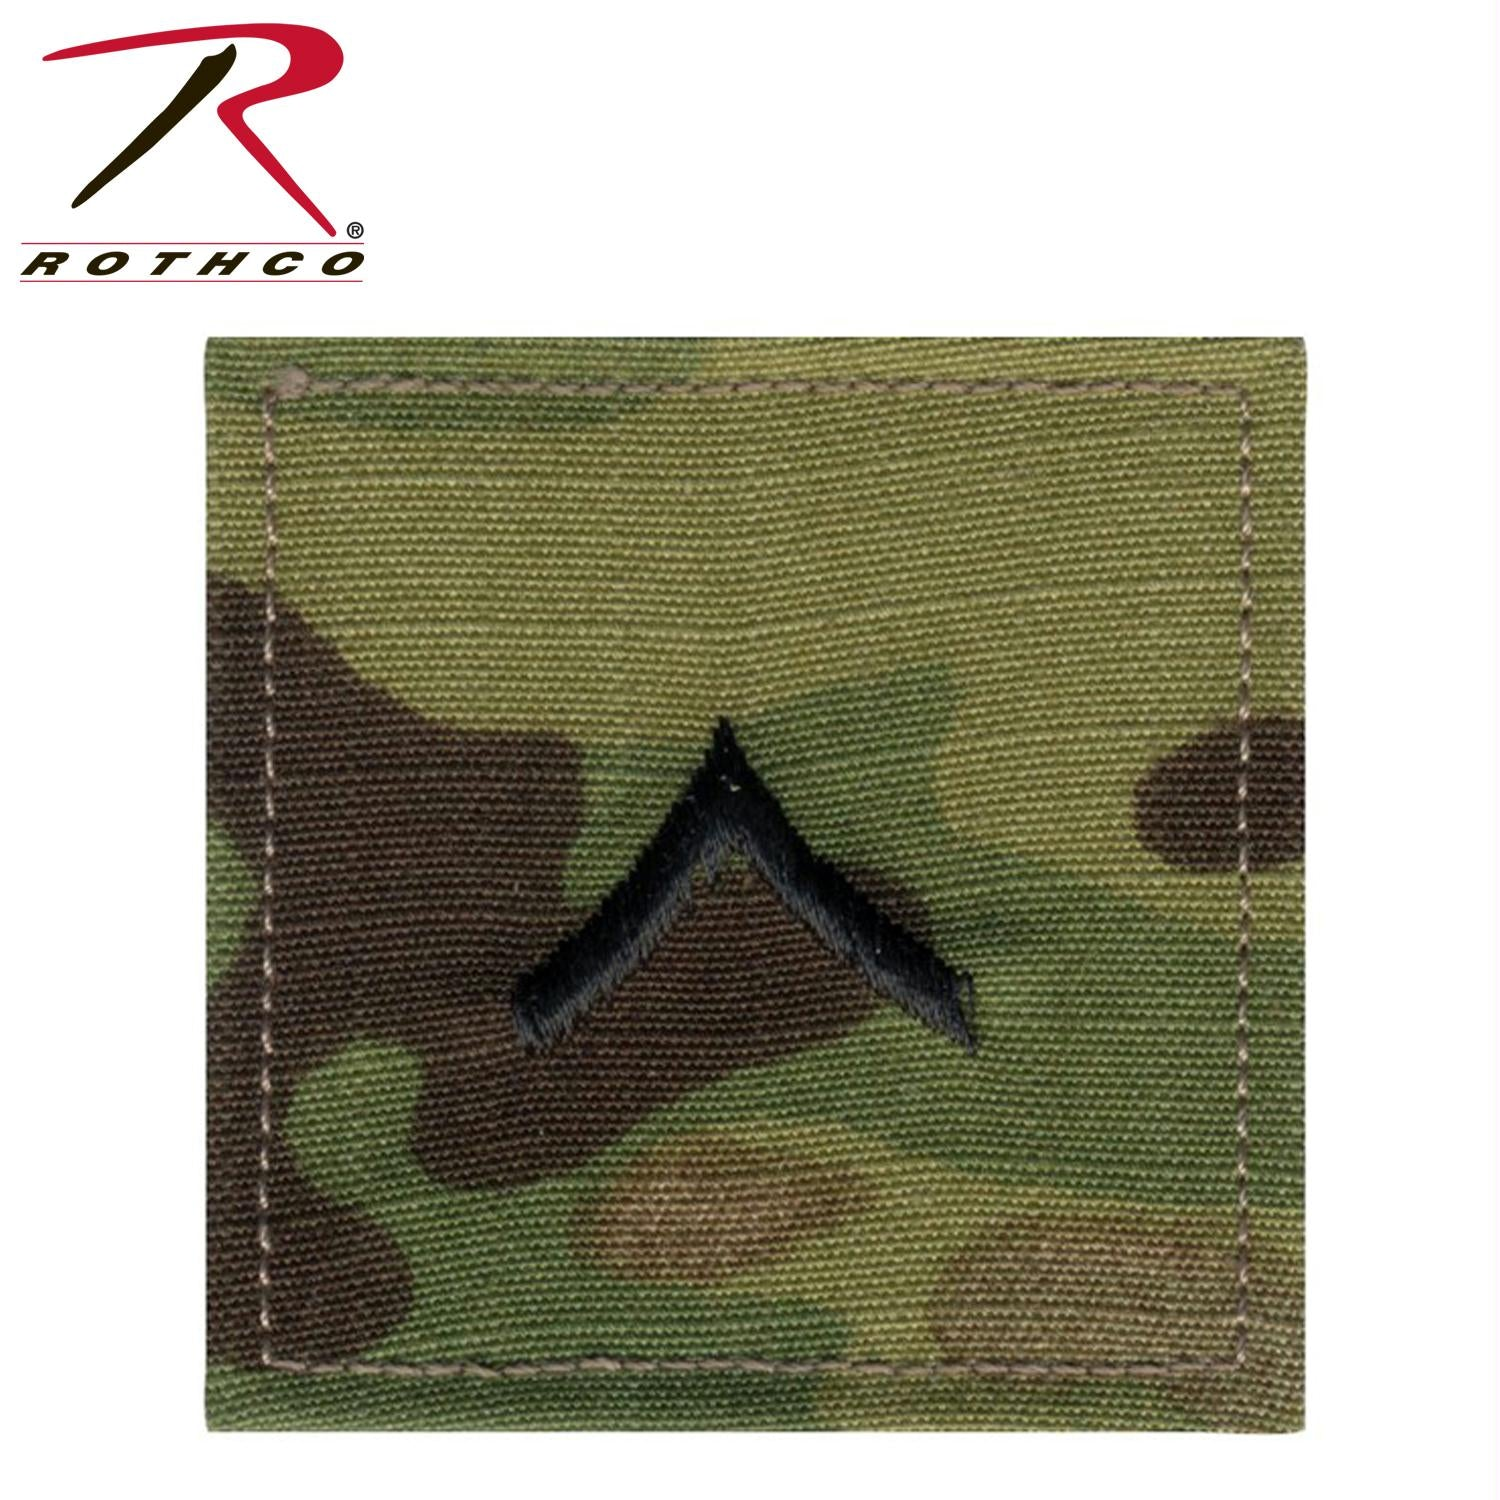 Rothco Official U.S. Made Embroidered Rank Insignia - Private - MultiCam